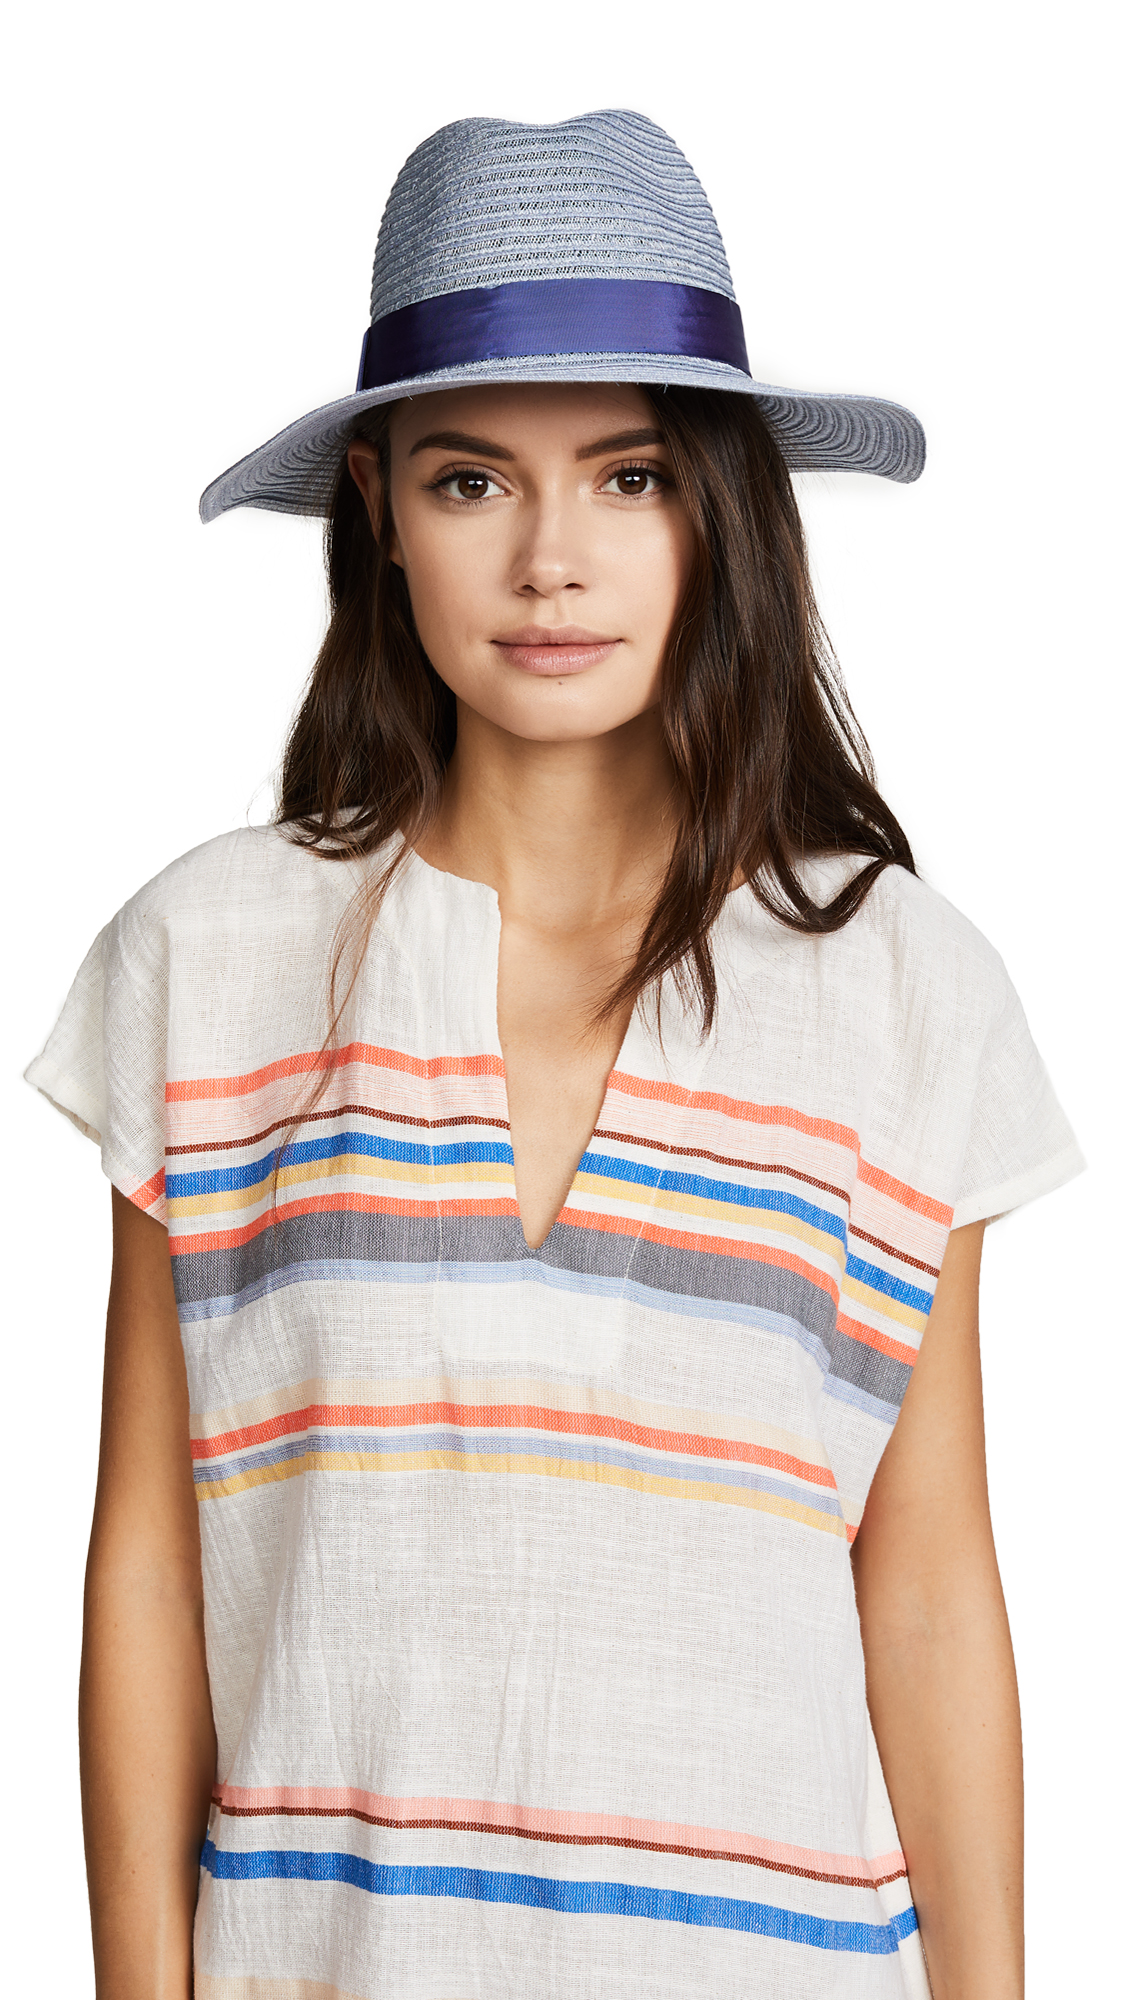 Eugenia Kim Courtney Packable Fedora Hat - Blue